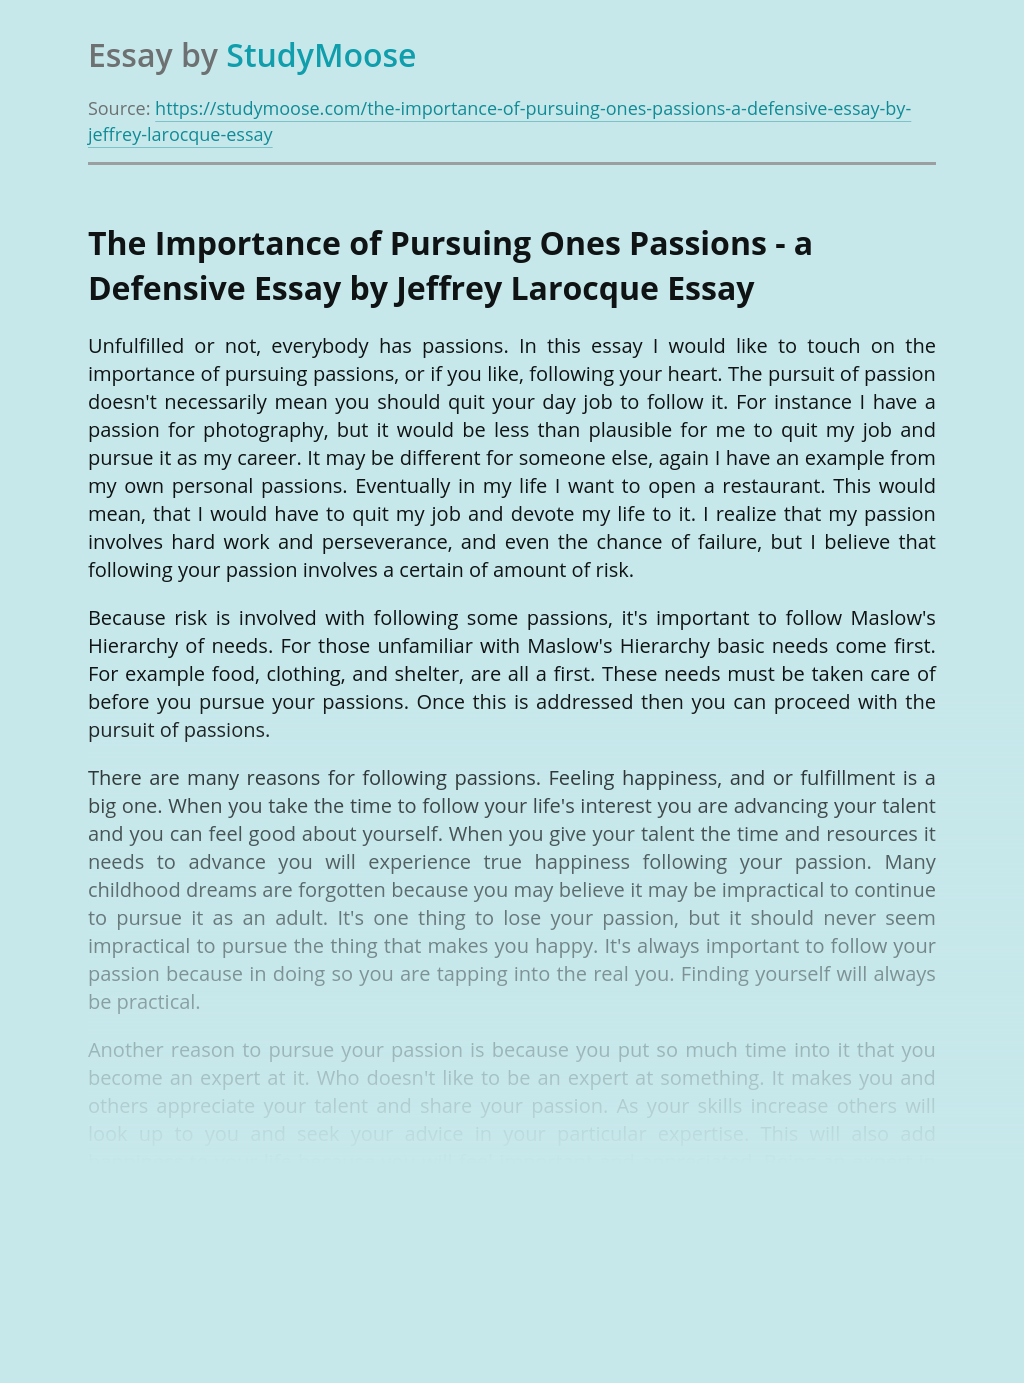 The Importance of Pursuing Ones Passions - a Defensive Essay by Jeffrey Larocque